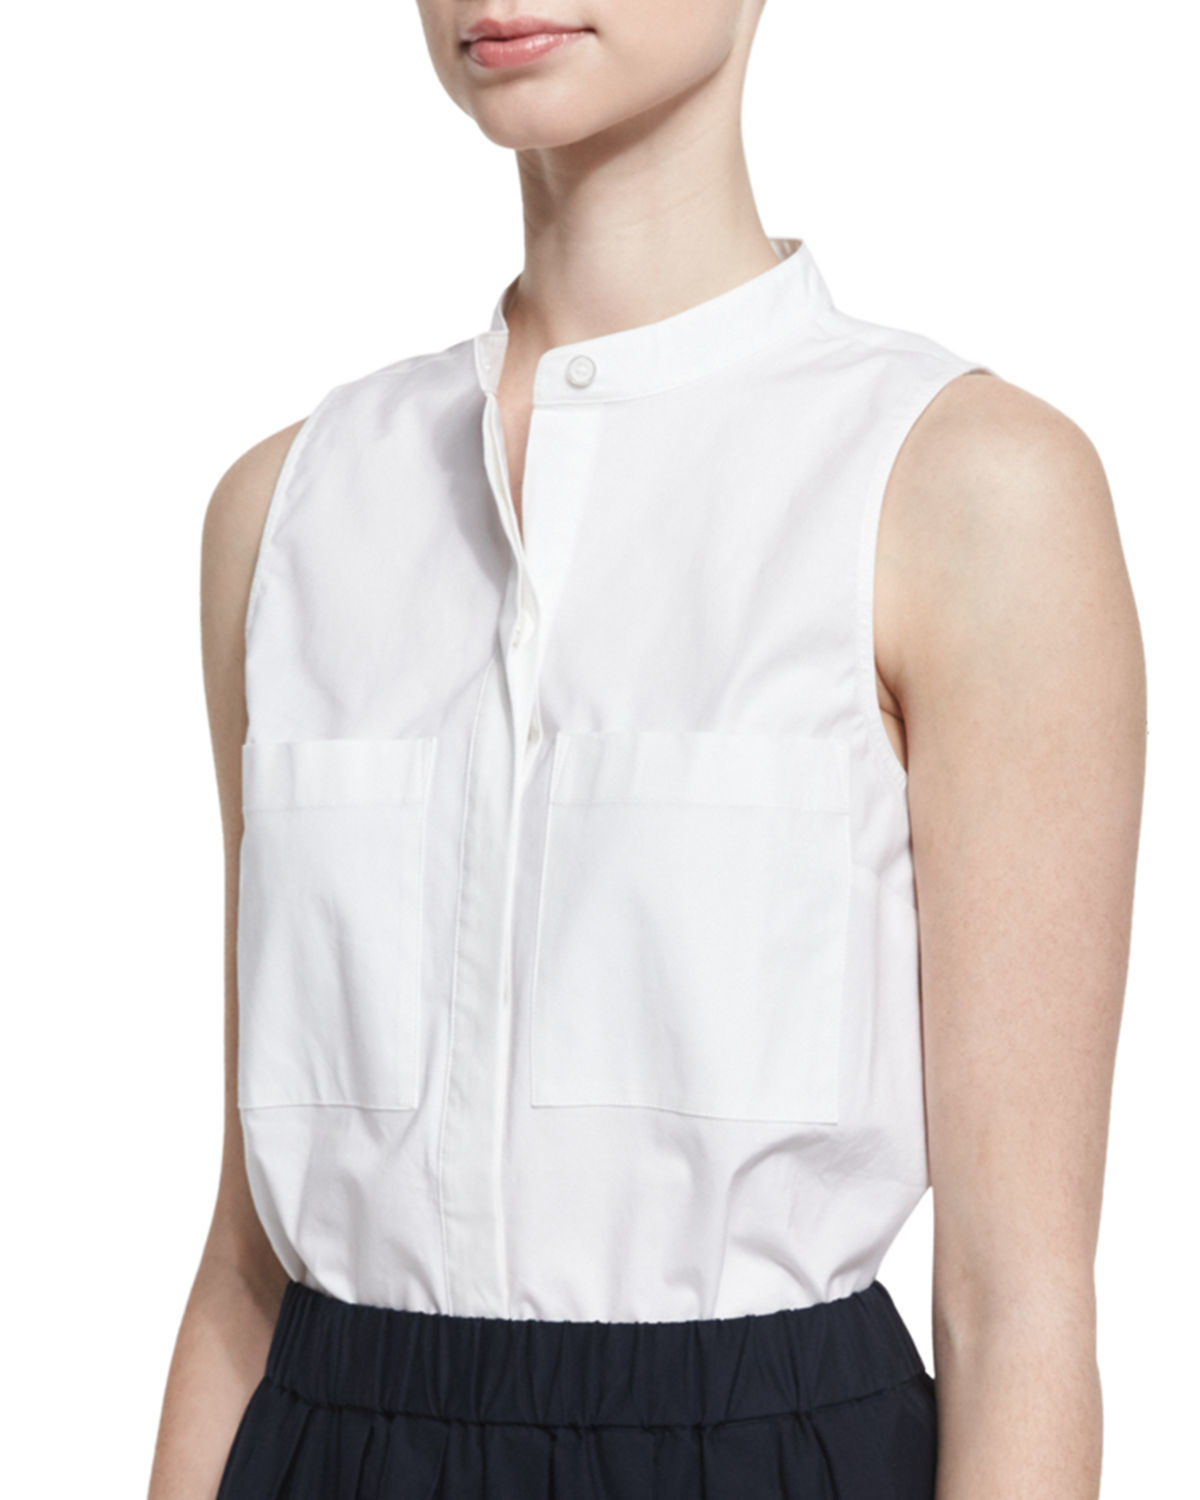 White cotton sleeveless blouse long blouse with pants for Sleeveless cotton button down shirts